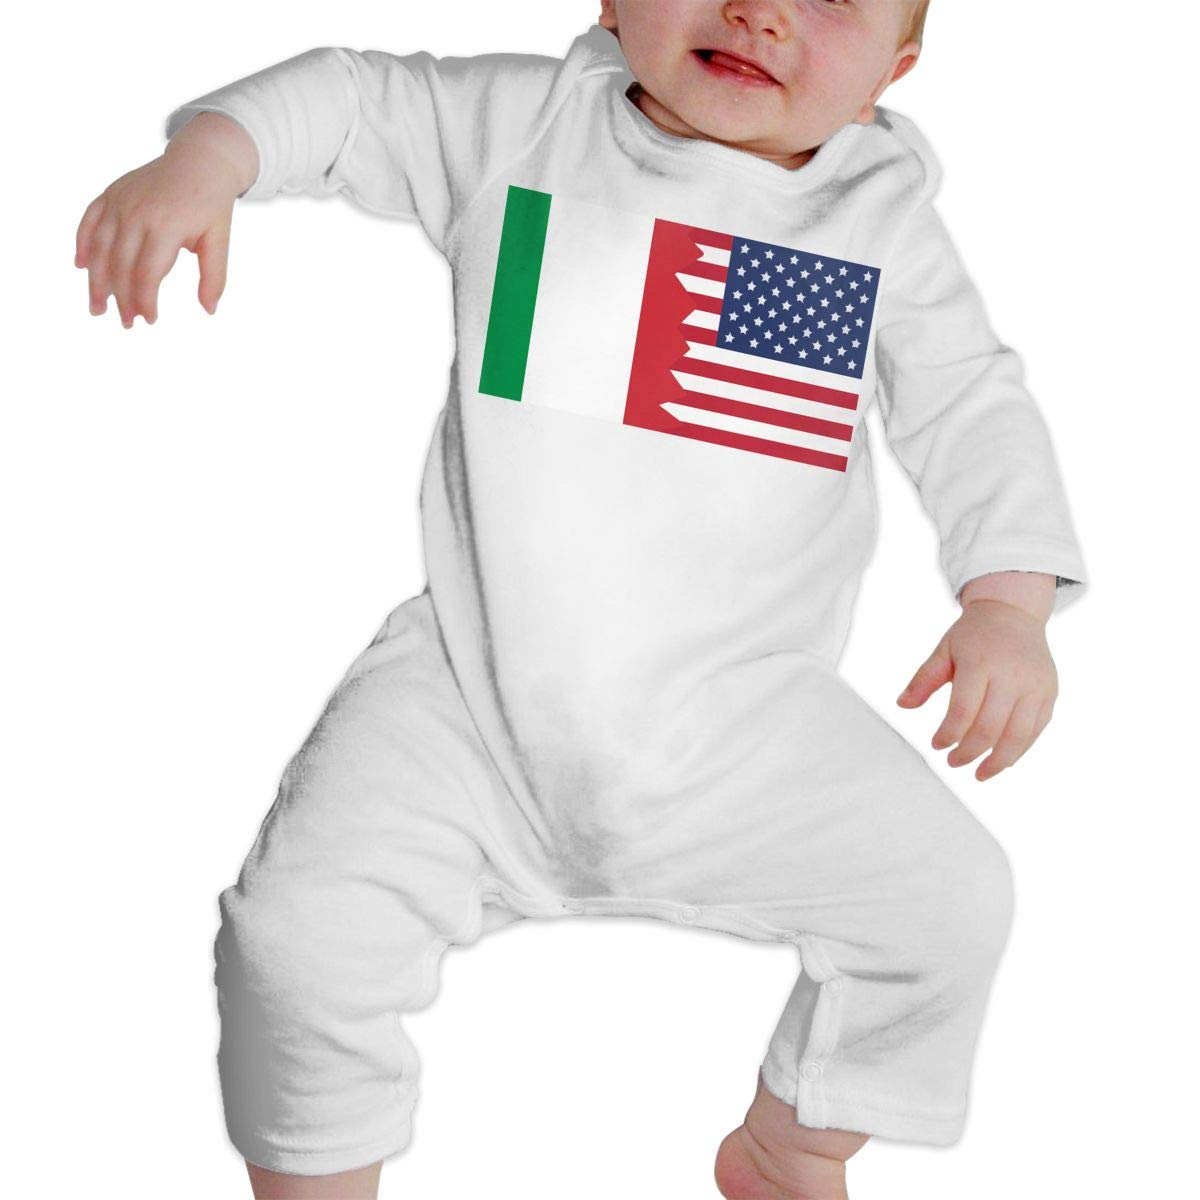 A1BY-5US Newborn Baby Boys Girls Cotton Long Sleeve Italian USA Flag Jumpsuit Romper One-Piece Romper Clothes